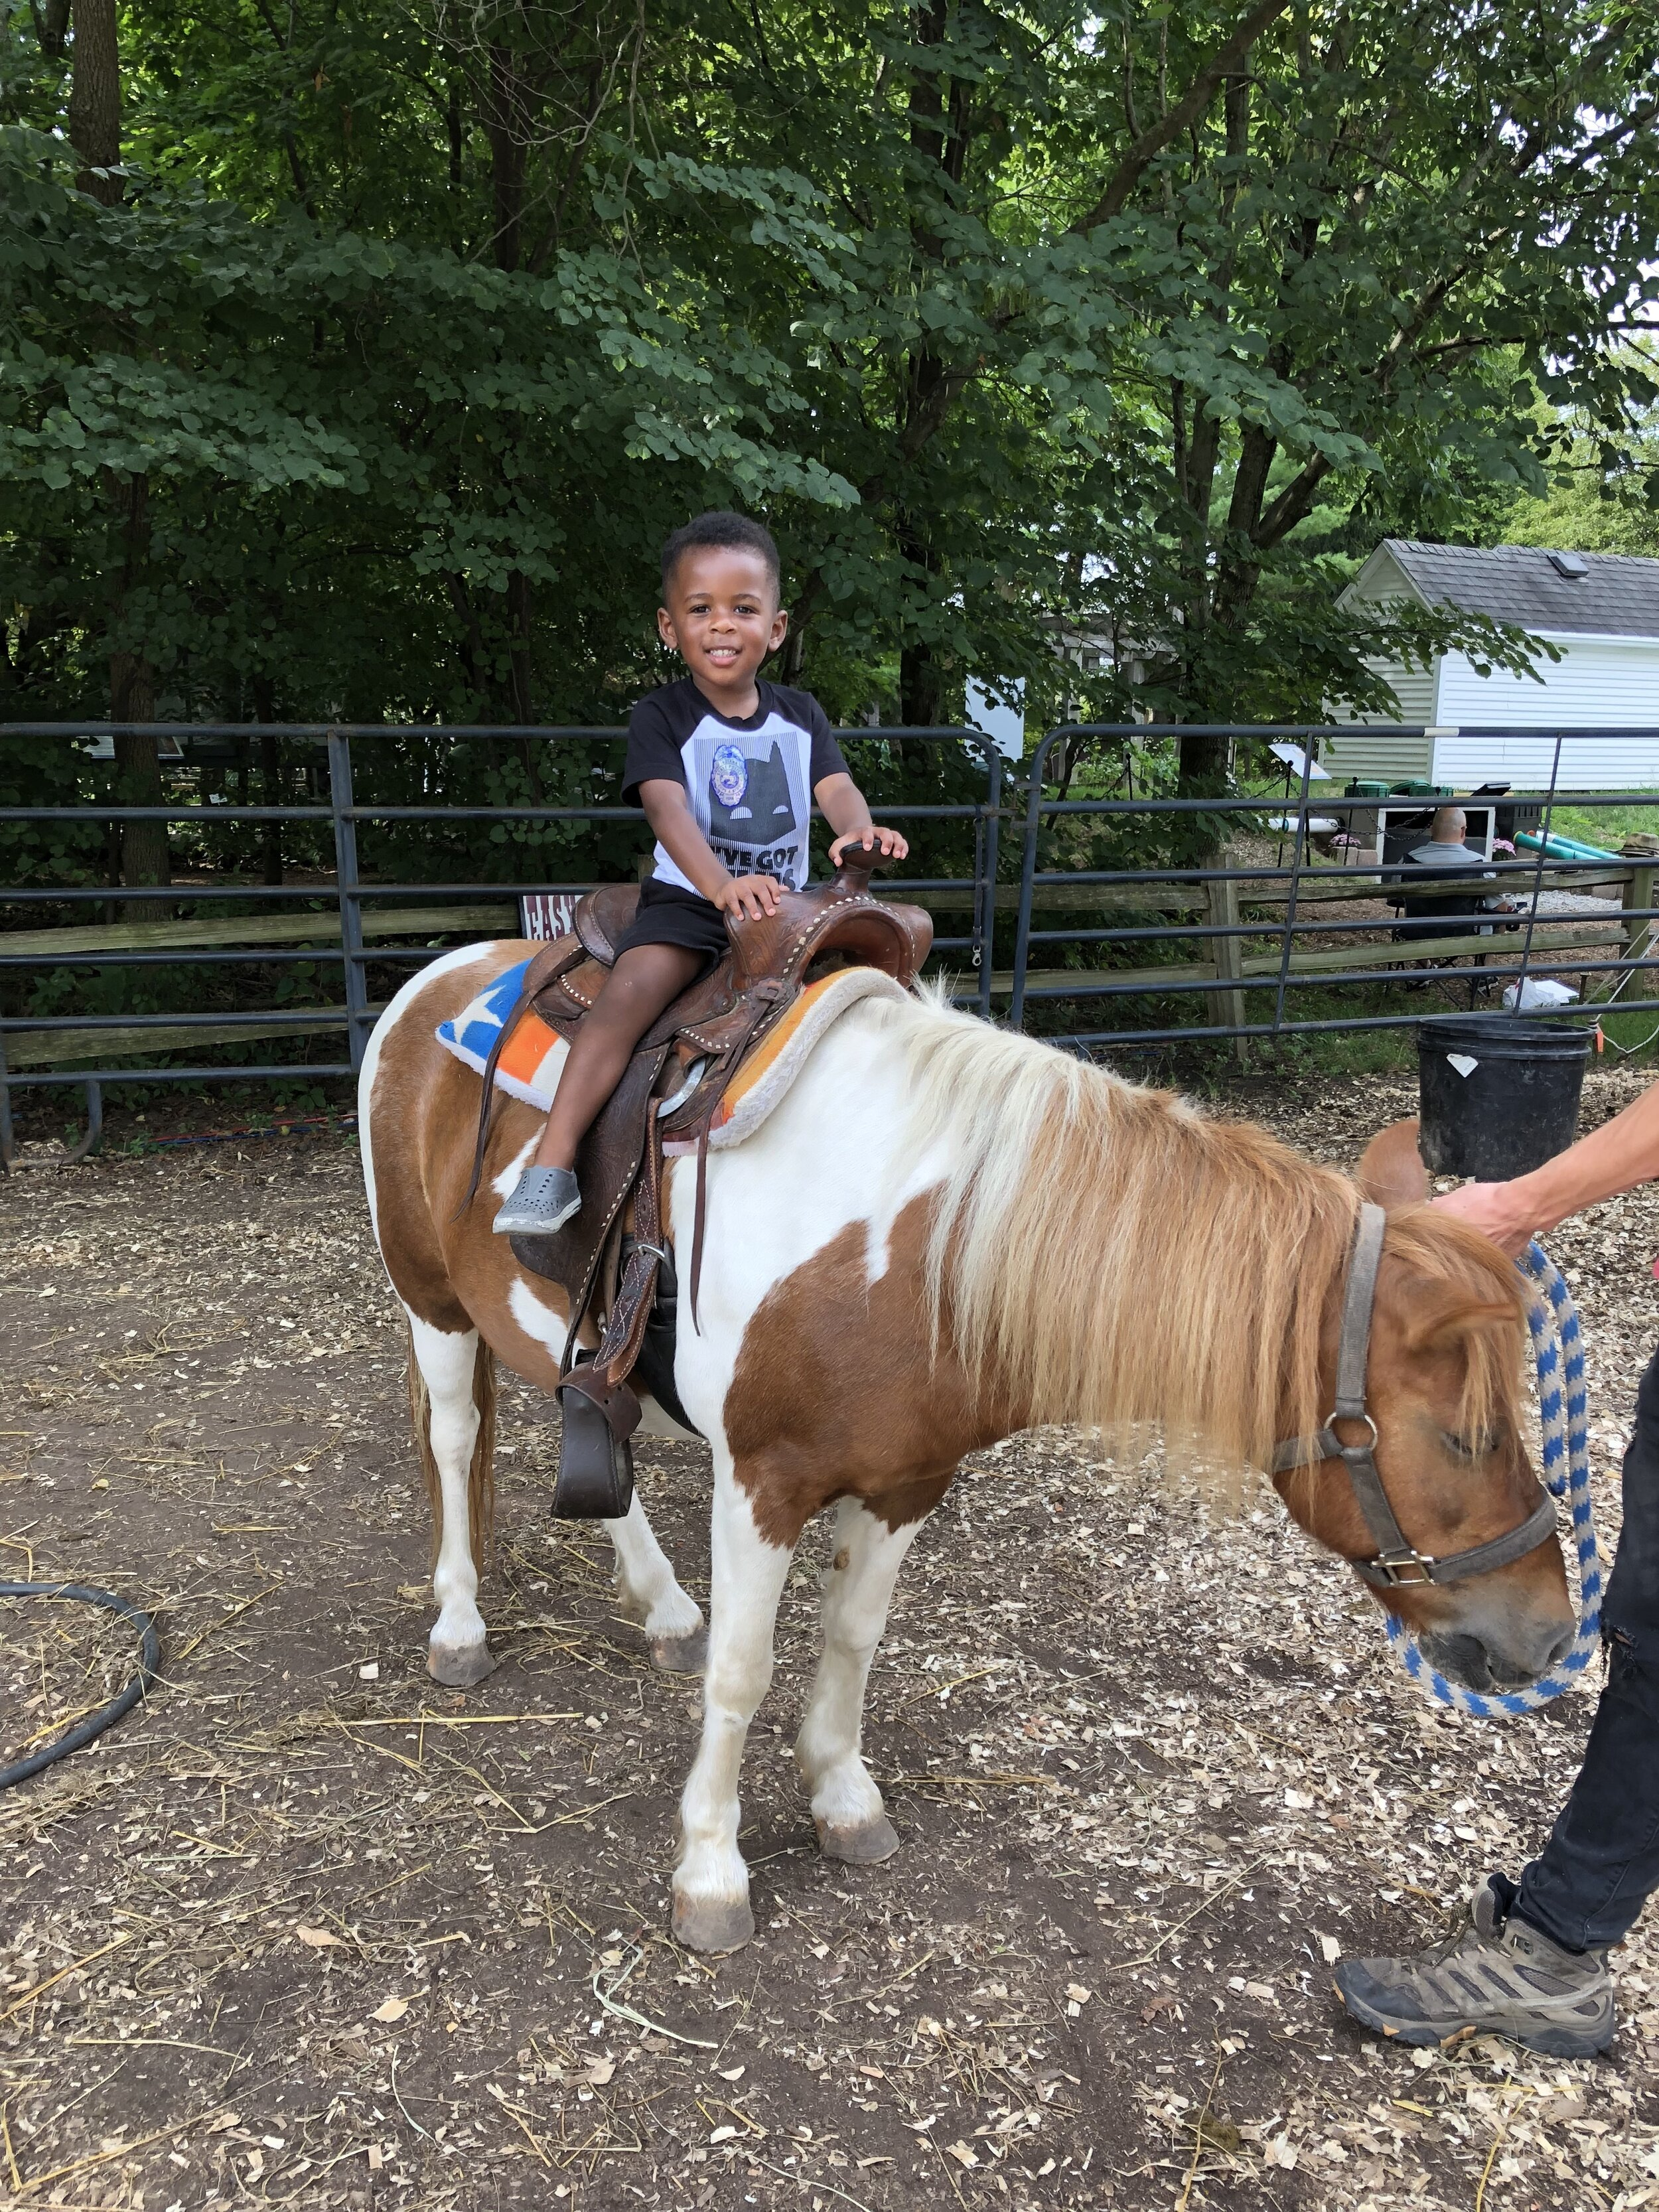 We went to the state fair and Maxwell got to ride a horse for the first time